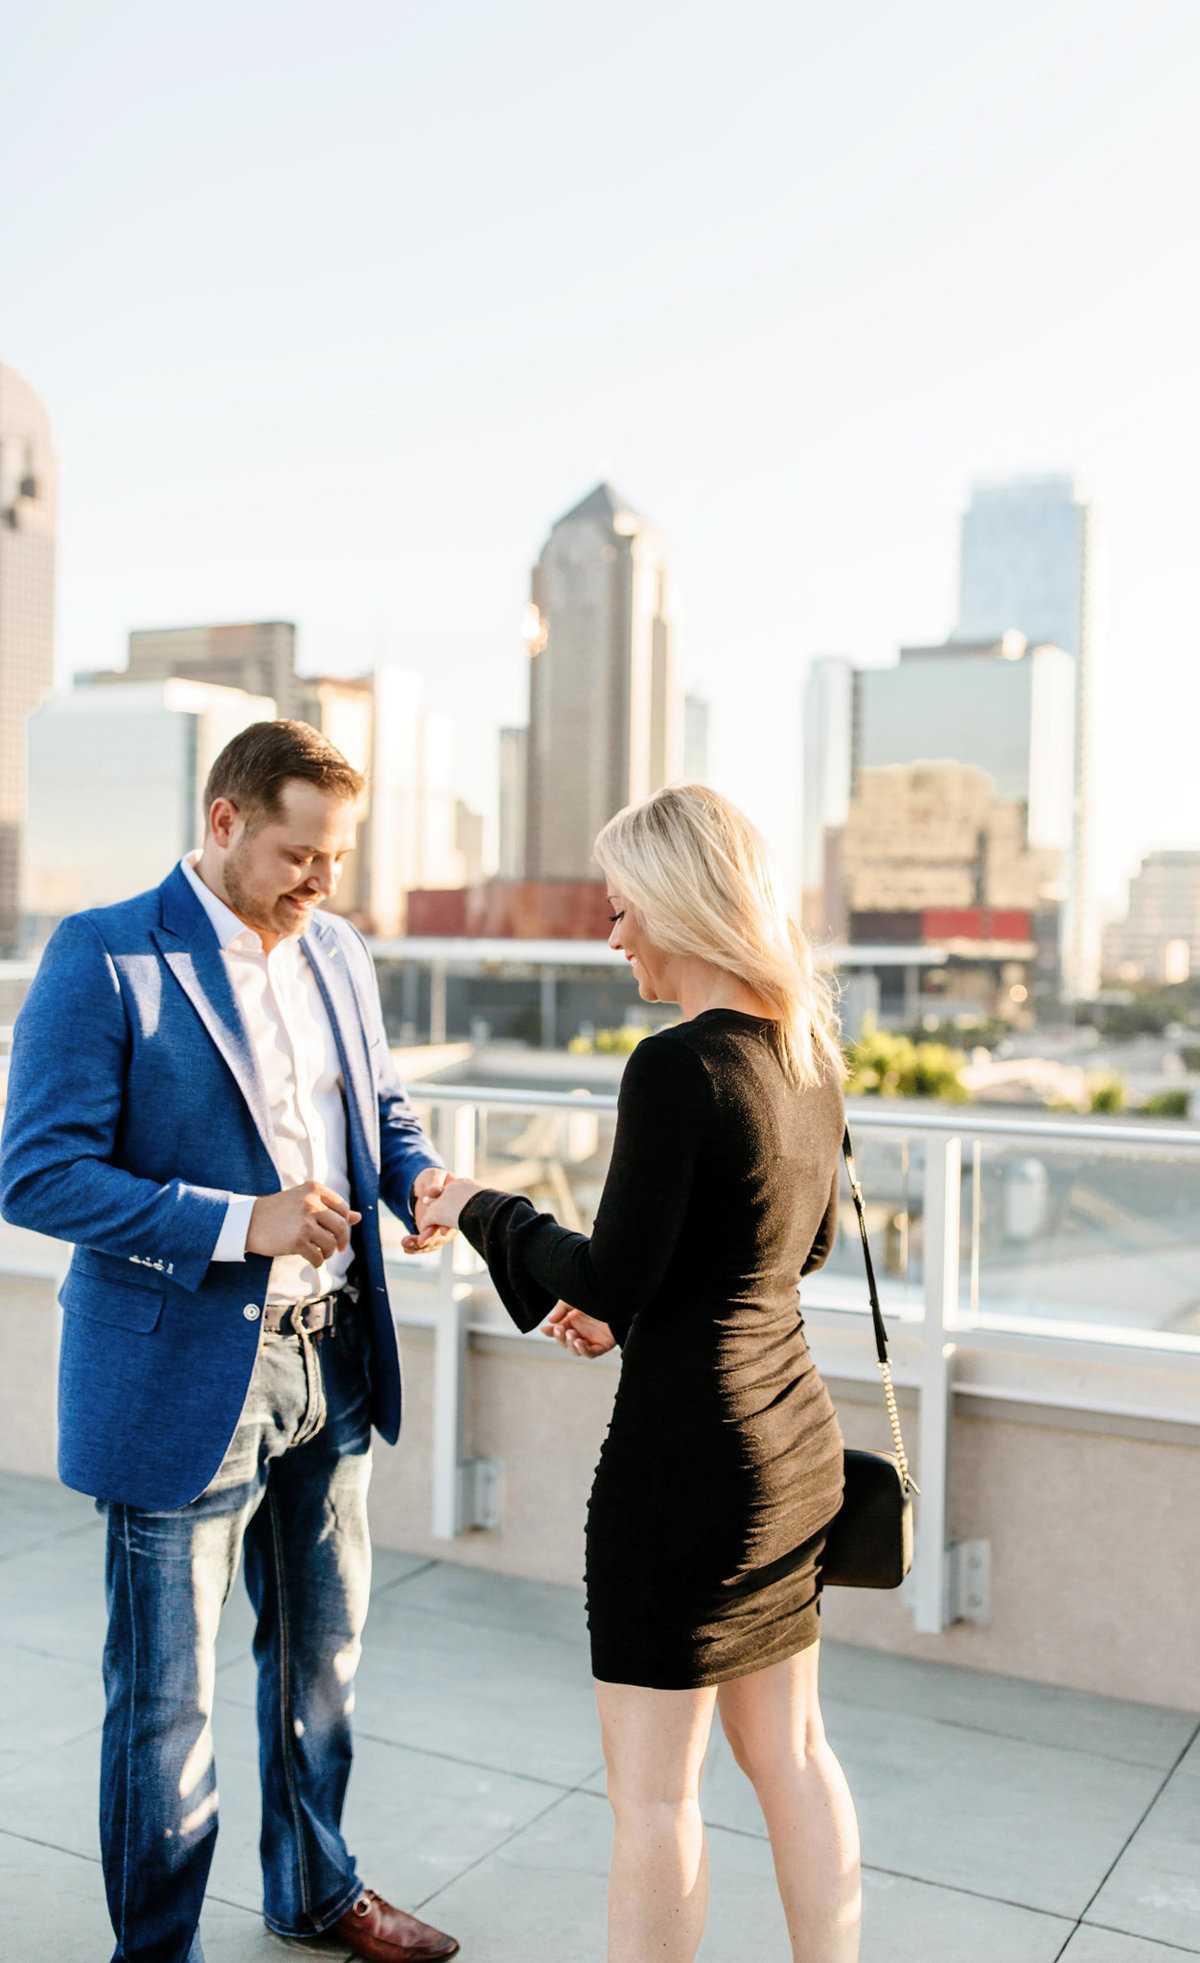 Eric & Megan - Downtown Dallas Rooftop Proposal & Engagement Session-18